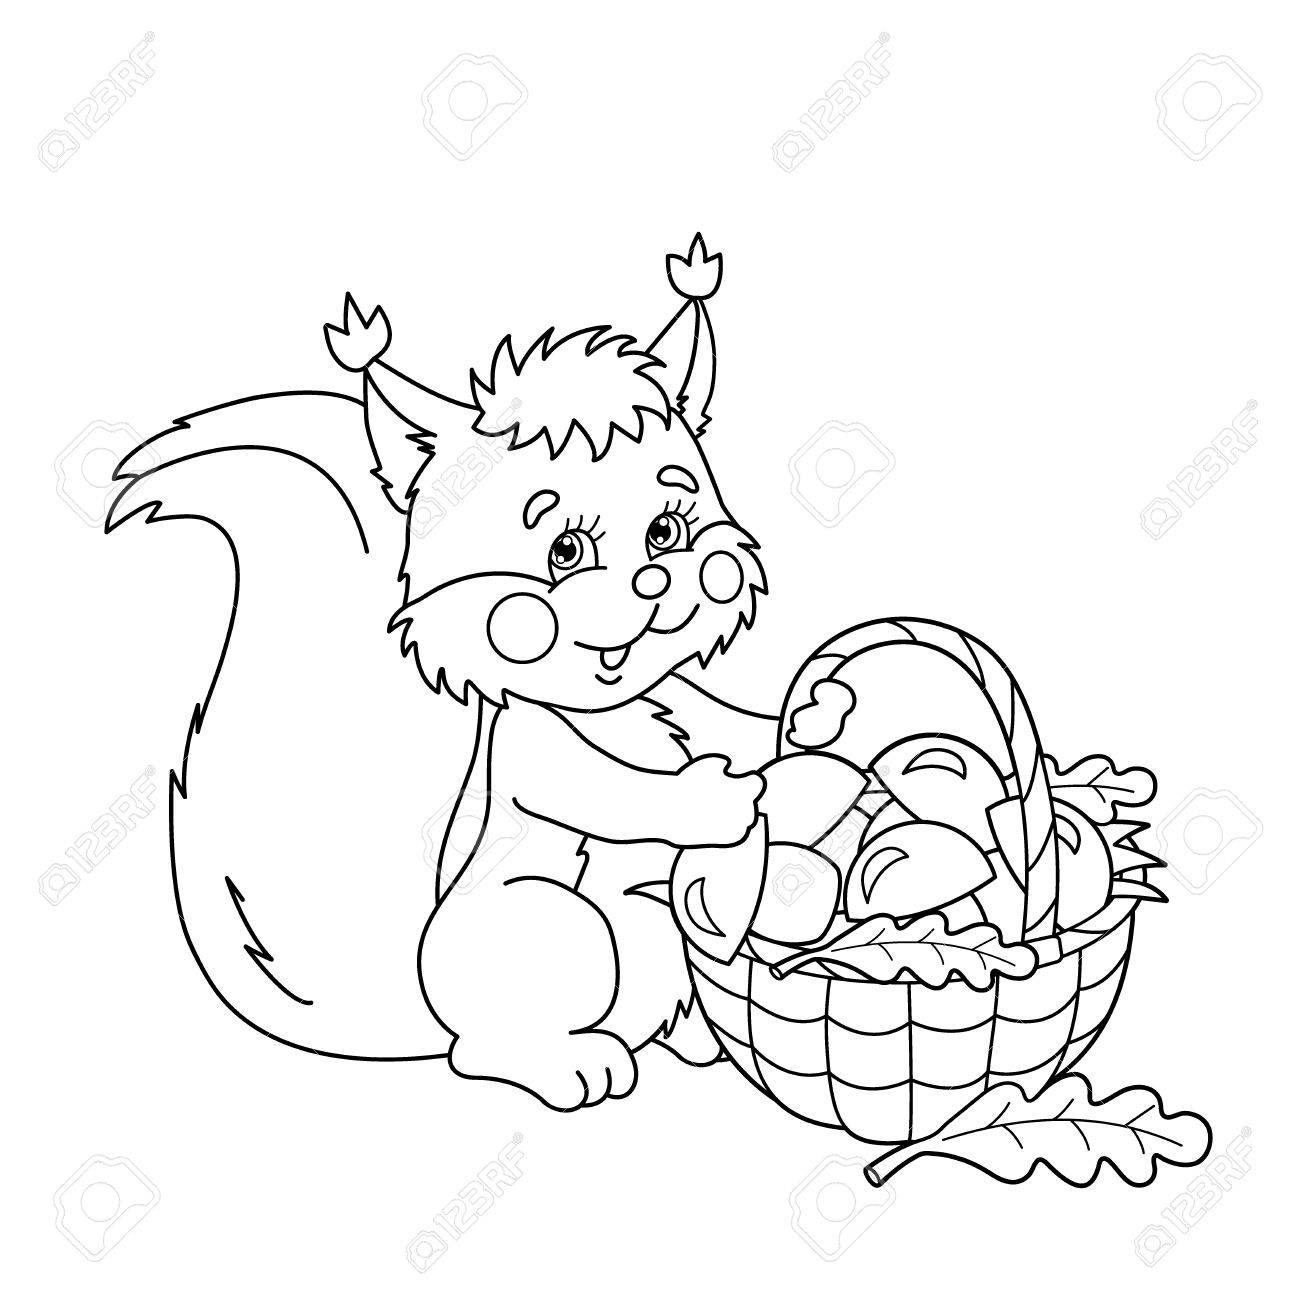 Coloring Page Outline Of Cartoon Squirrel With Basket Of Mushrooms ...